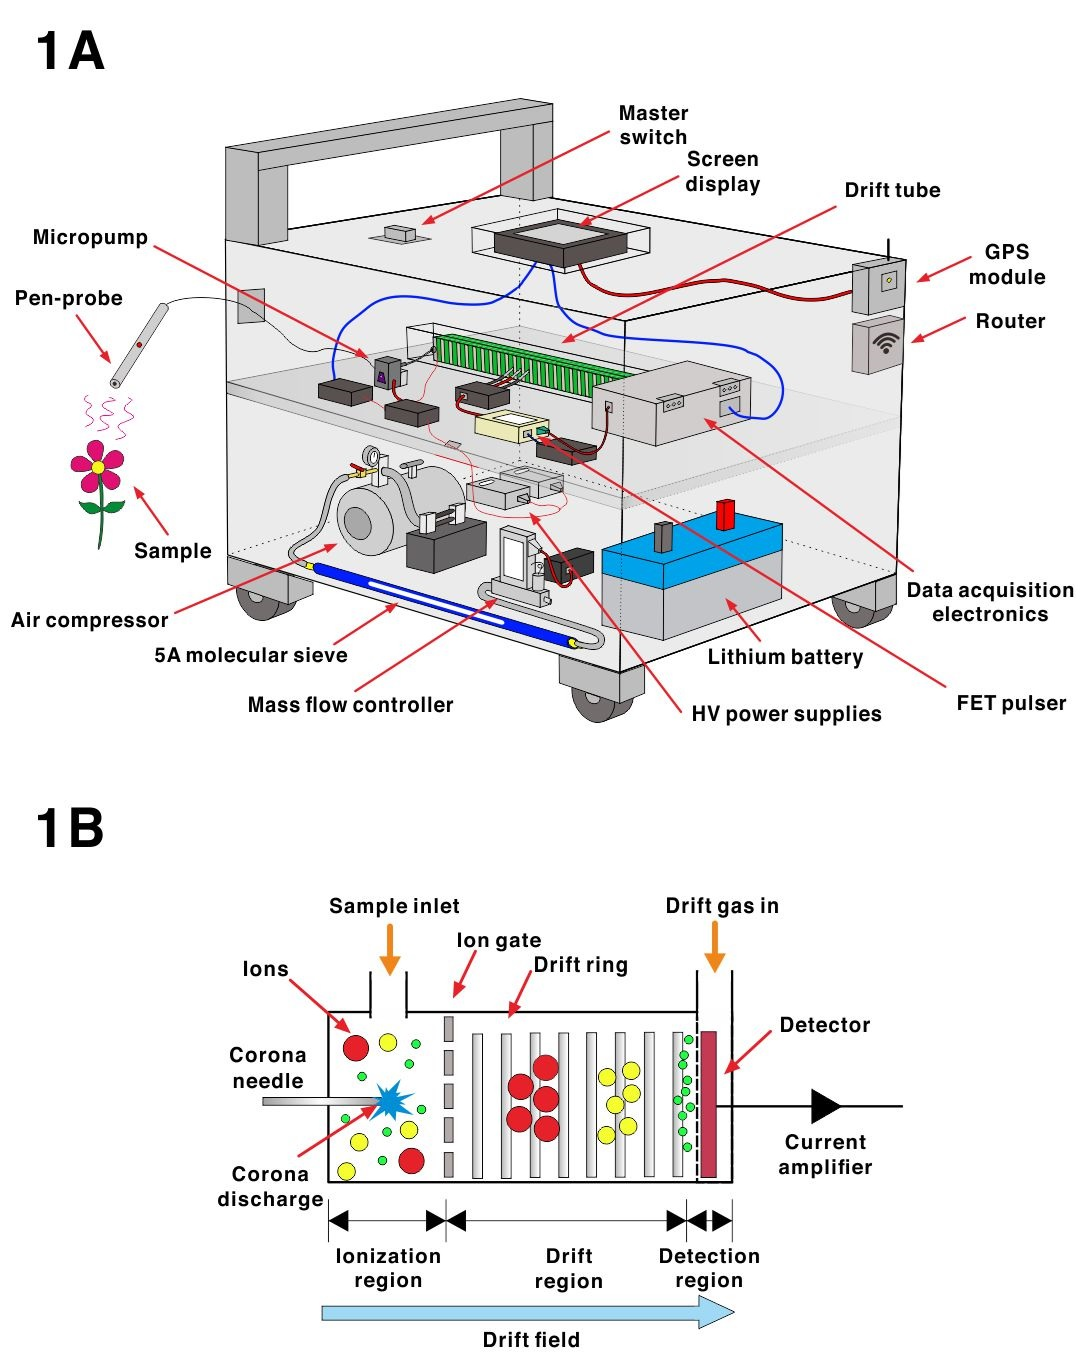 Portable Cloud-integrated Pen-Probe Analyzer for In-situ Analysis of Volatile Organic Compounds Emanating from Surfaces